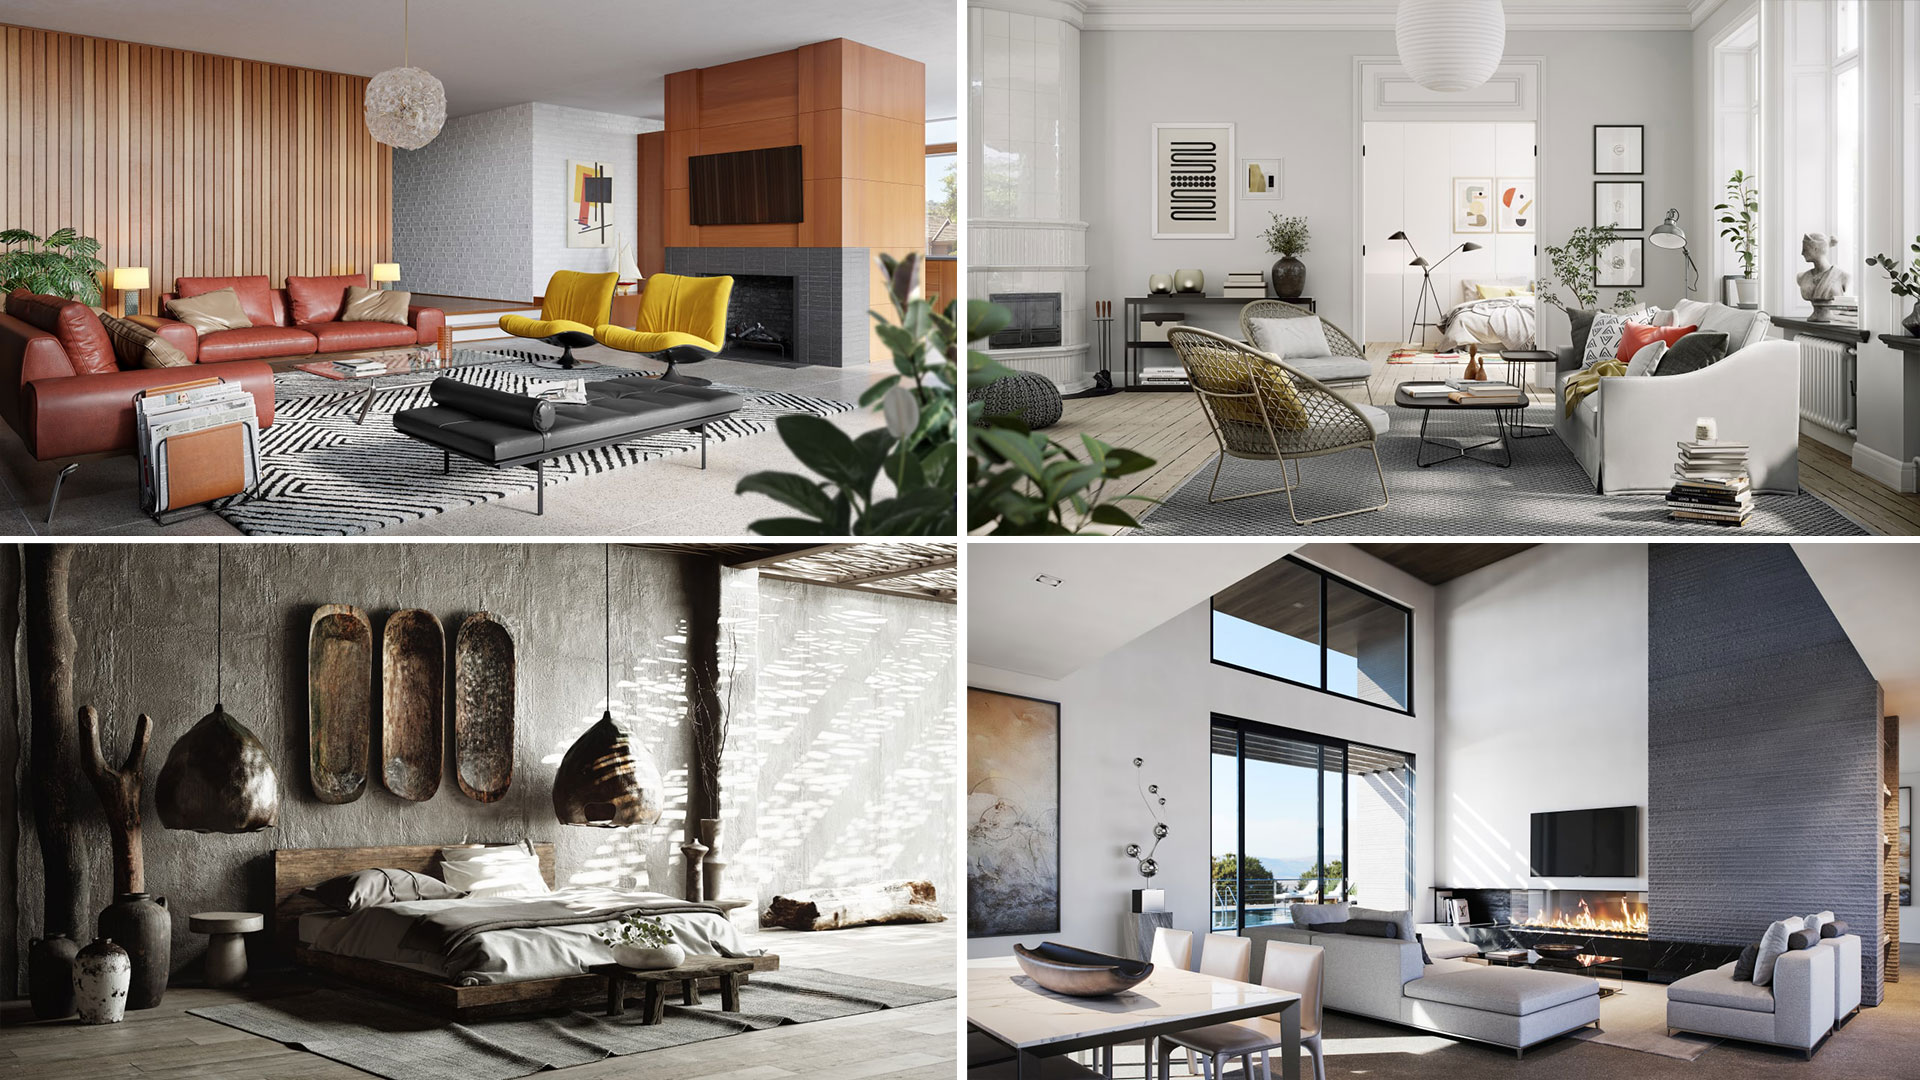 Four Types of Modern Interiors in Different Styles